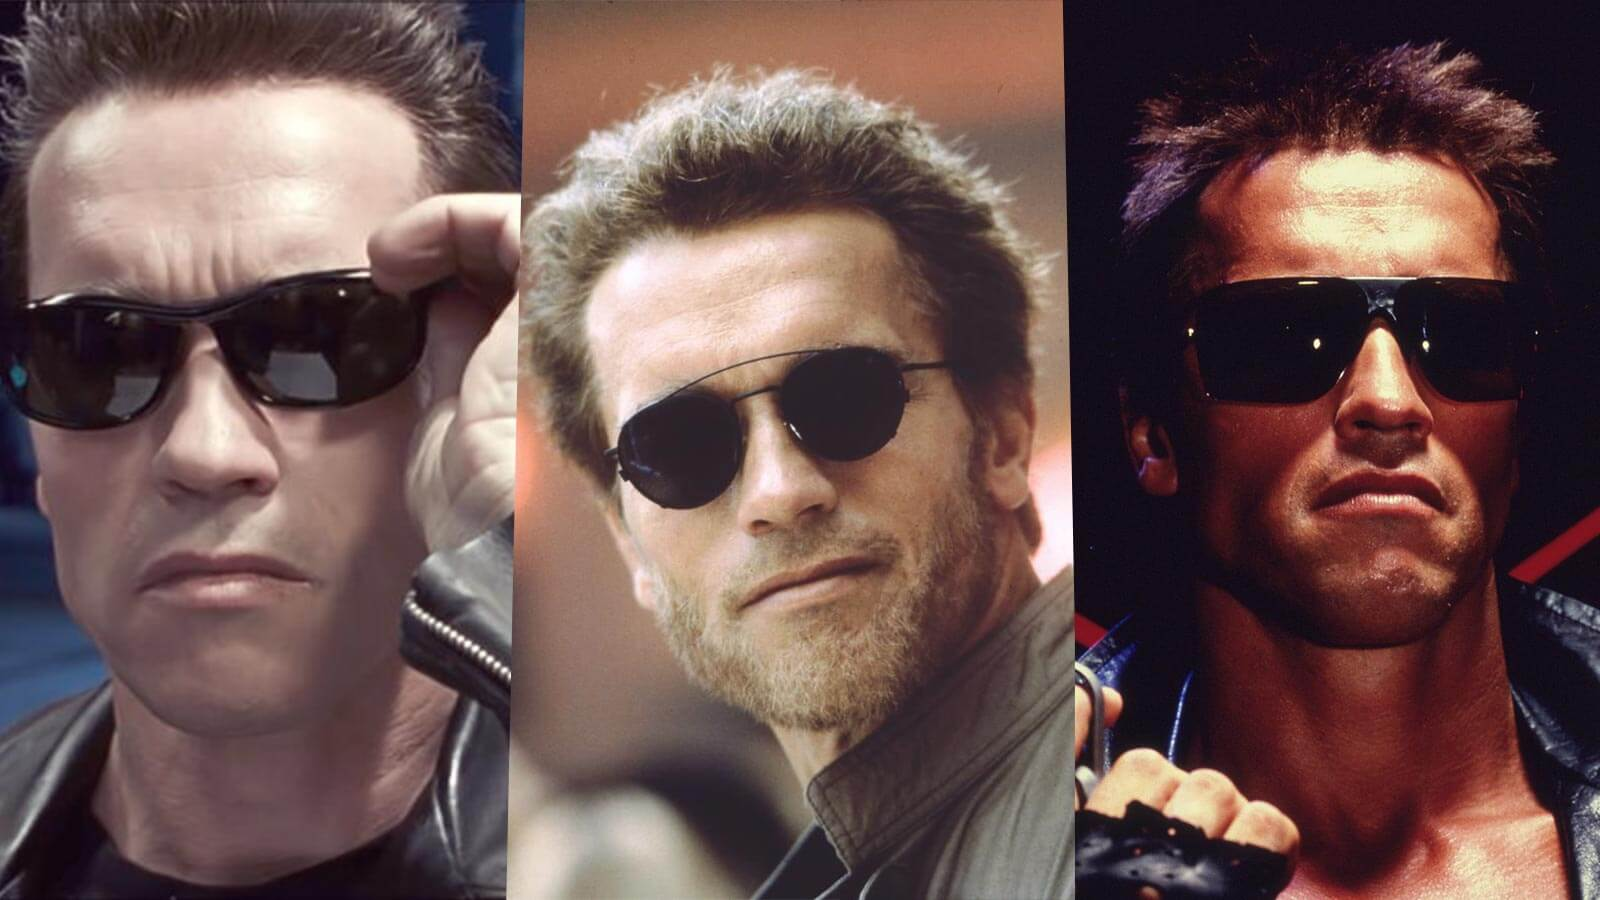 Discover the Most Famous Arnold Schwarzenegger Sunglasses Today